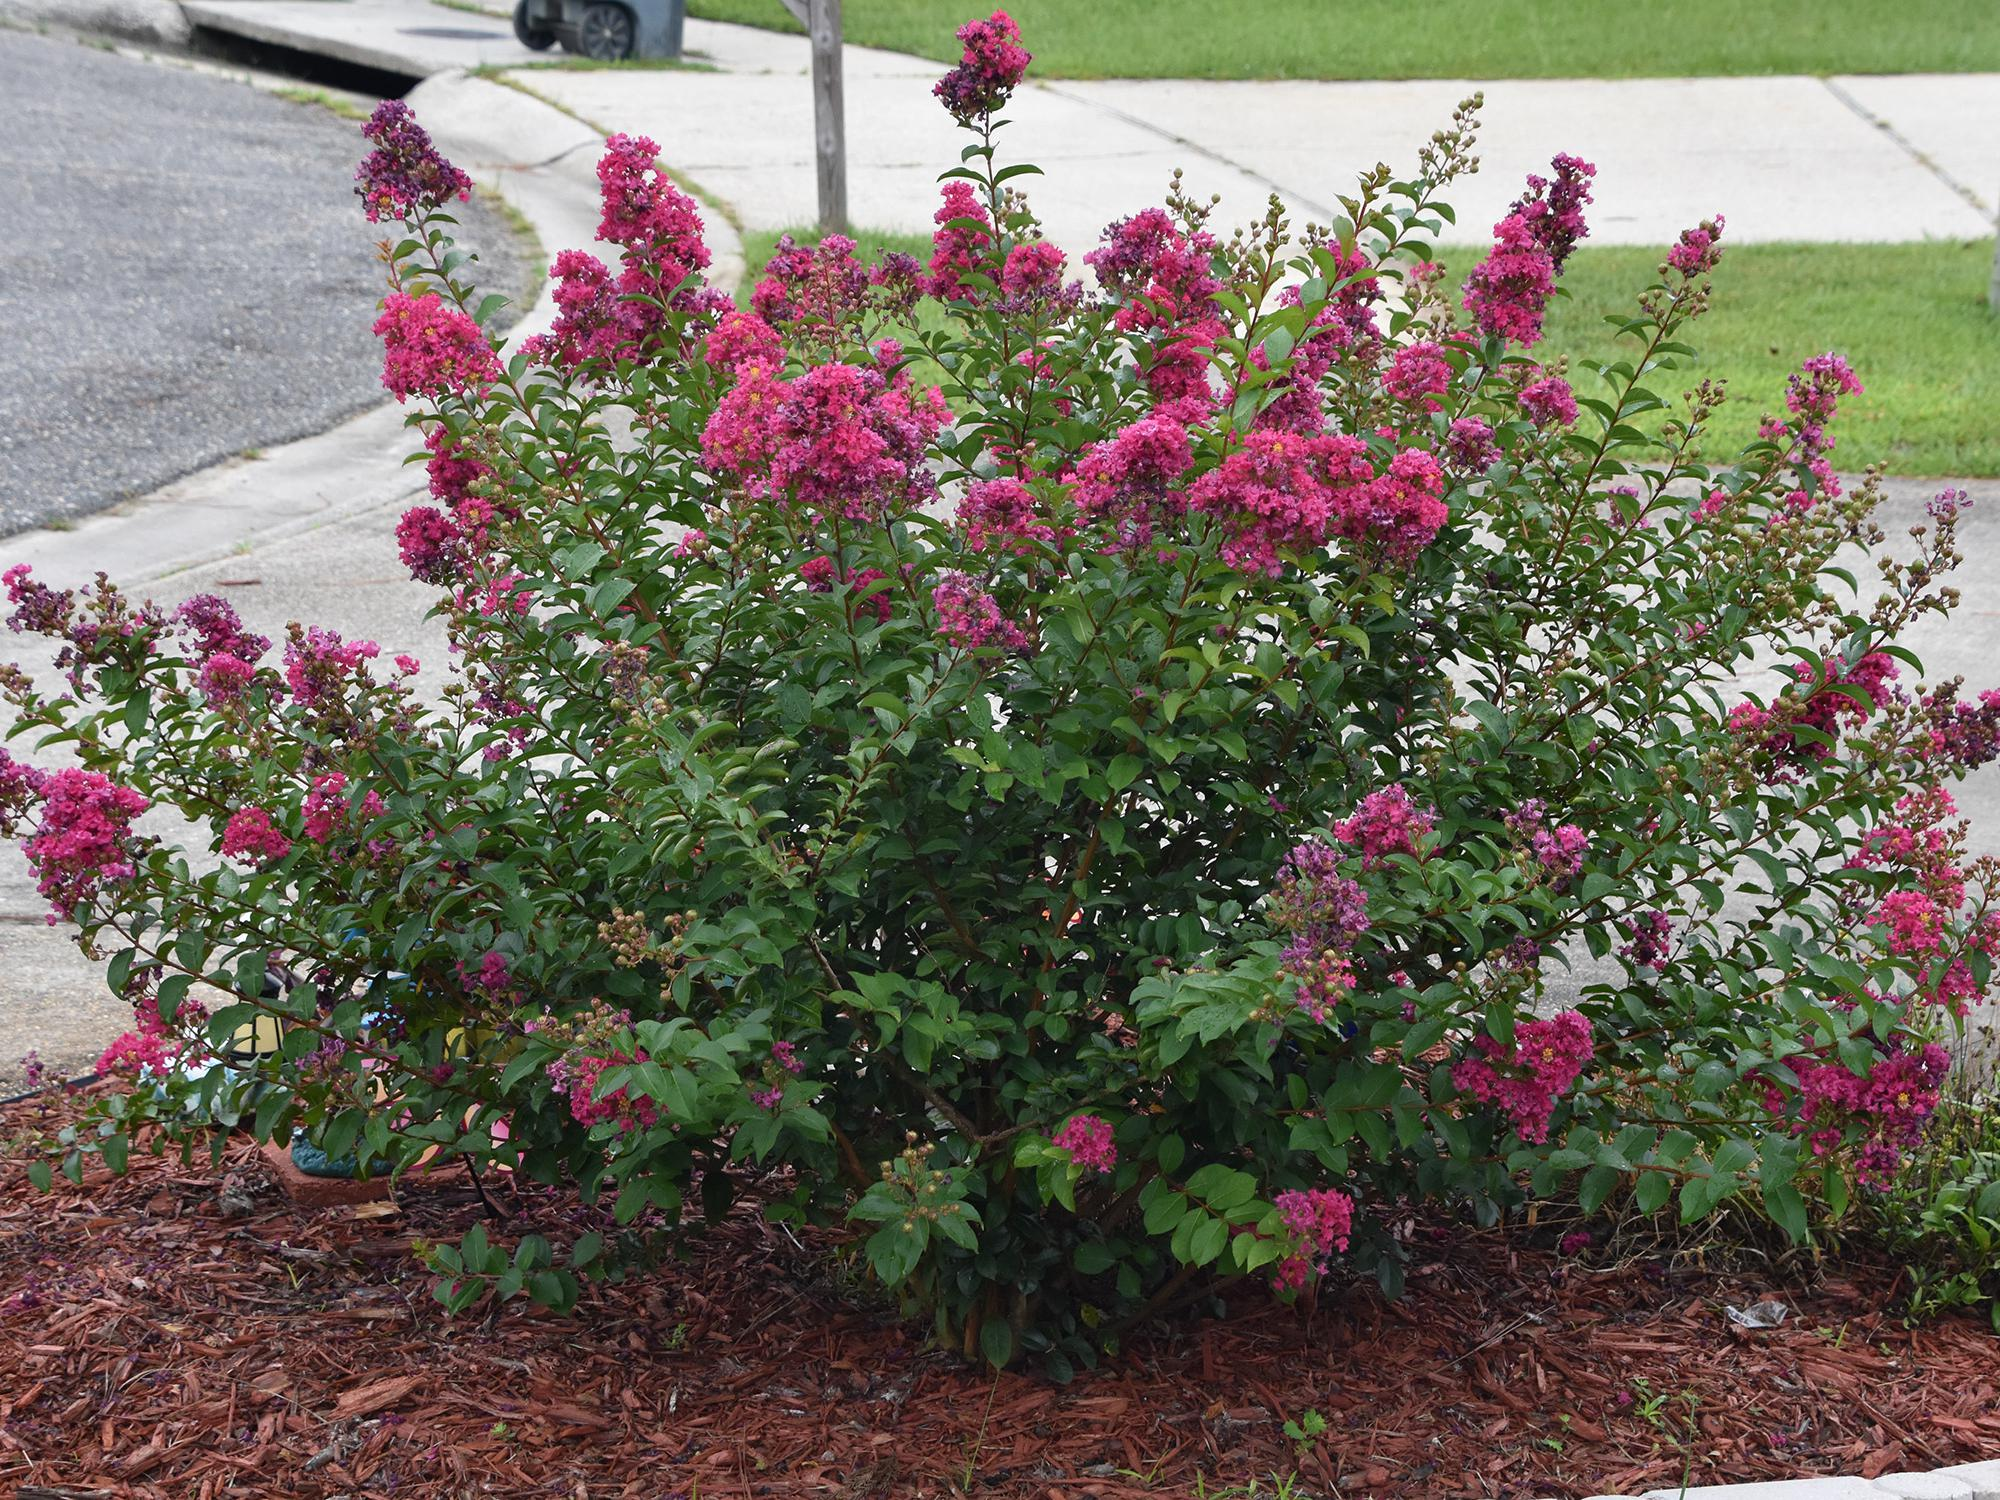 Gardeners sometimes use heavy pruning to control crape myrtle size and shape, but these goals are better achieved by choosing the right plant to fit the space. This Bourbon Street Dwarf Crape Myrtle is an excellent choice for a small area. (Photo by MSU Extension/Gary Bachman)